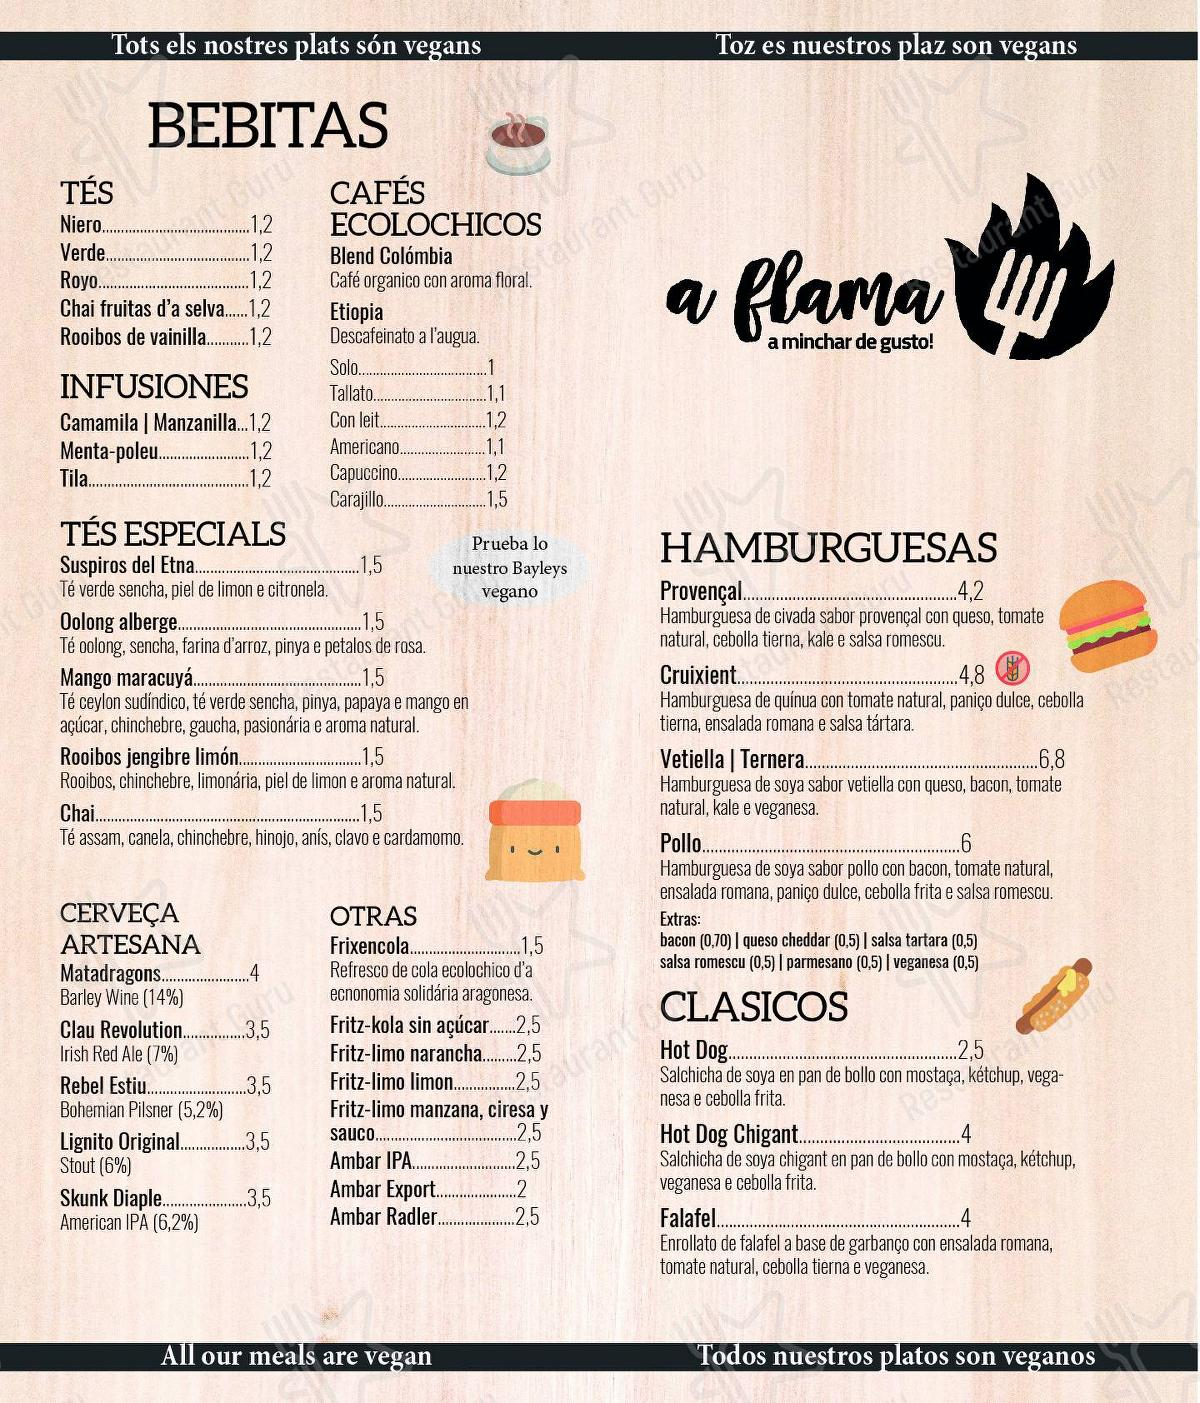 A Flama menu - dishes and beverages